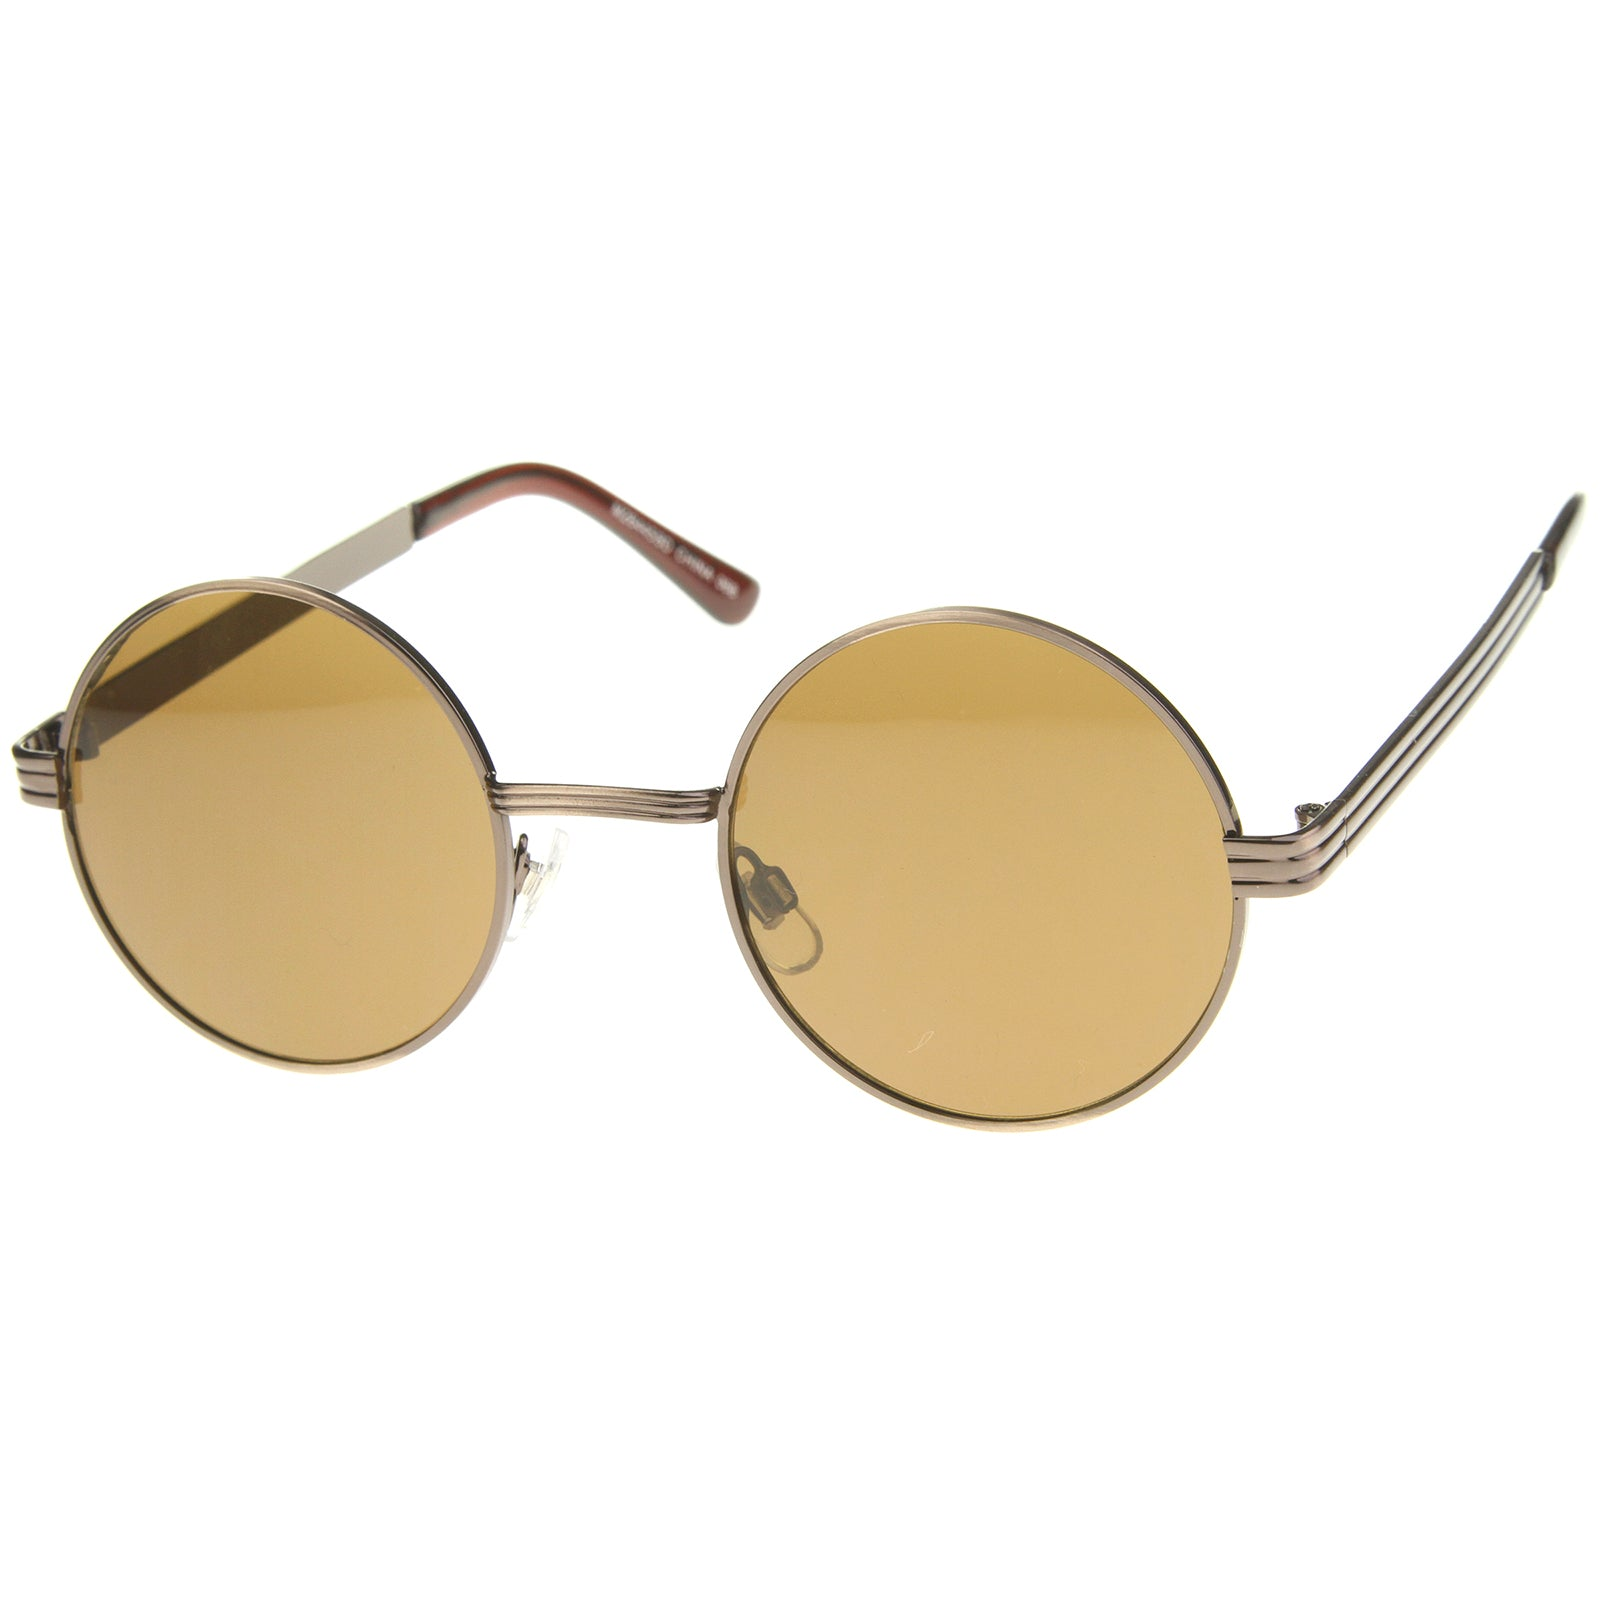 Retro Fashion Metal Textured Frame Flat Lens Round Sunglasses 50mm - sunglass.la - 14